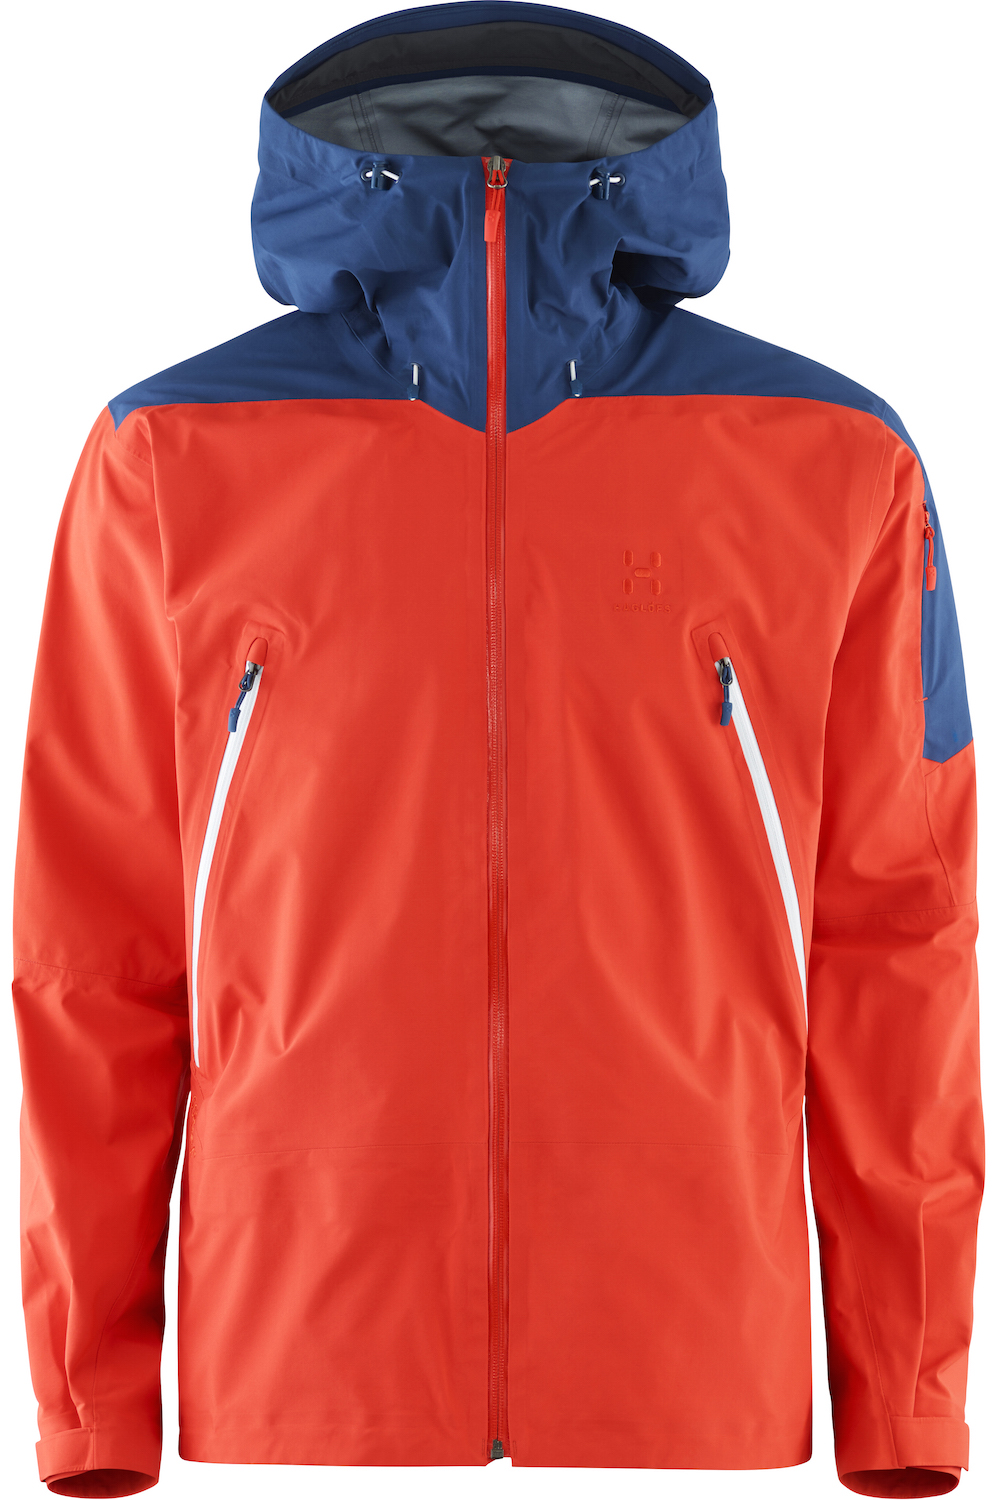 603430_COULOIR_JACKET_MEN_3KGhabanero-blue-ink